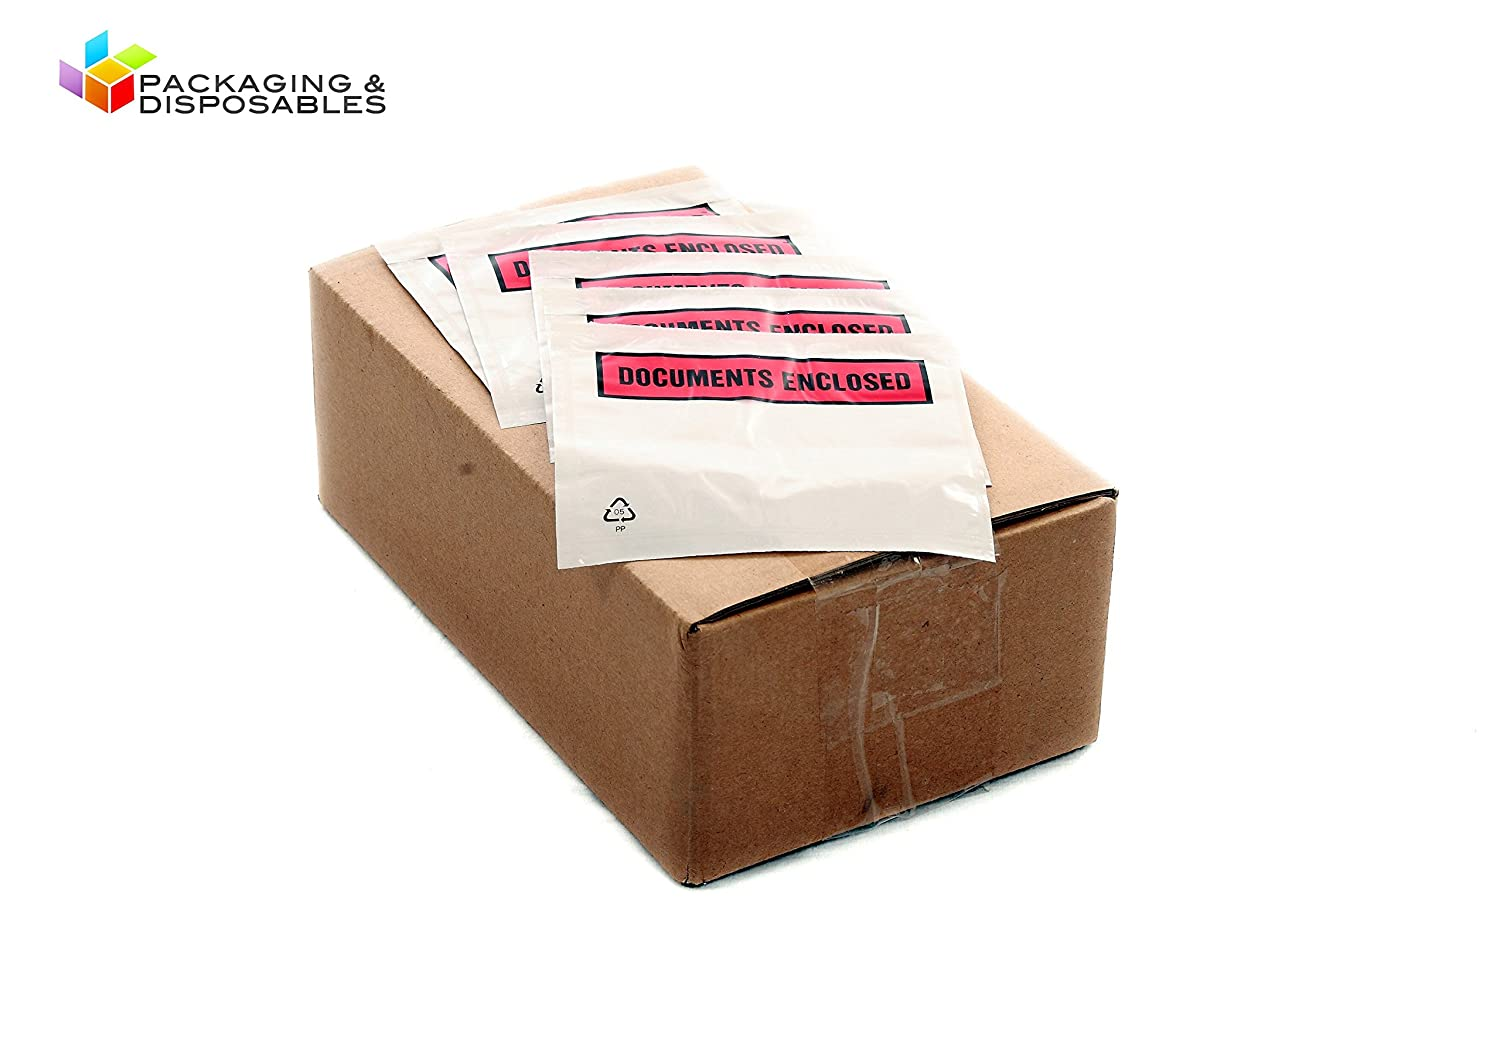 2000 Documents Enclosed Envelopes Wallets - A7 Size (PRINTED) PACKAGING AND DISPOSABLES